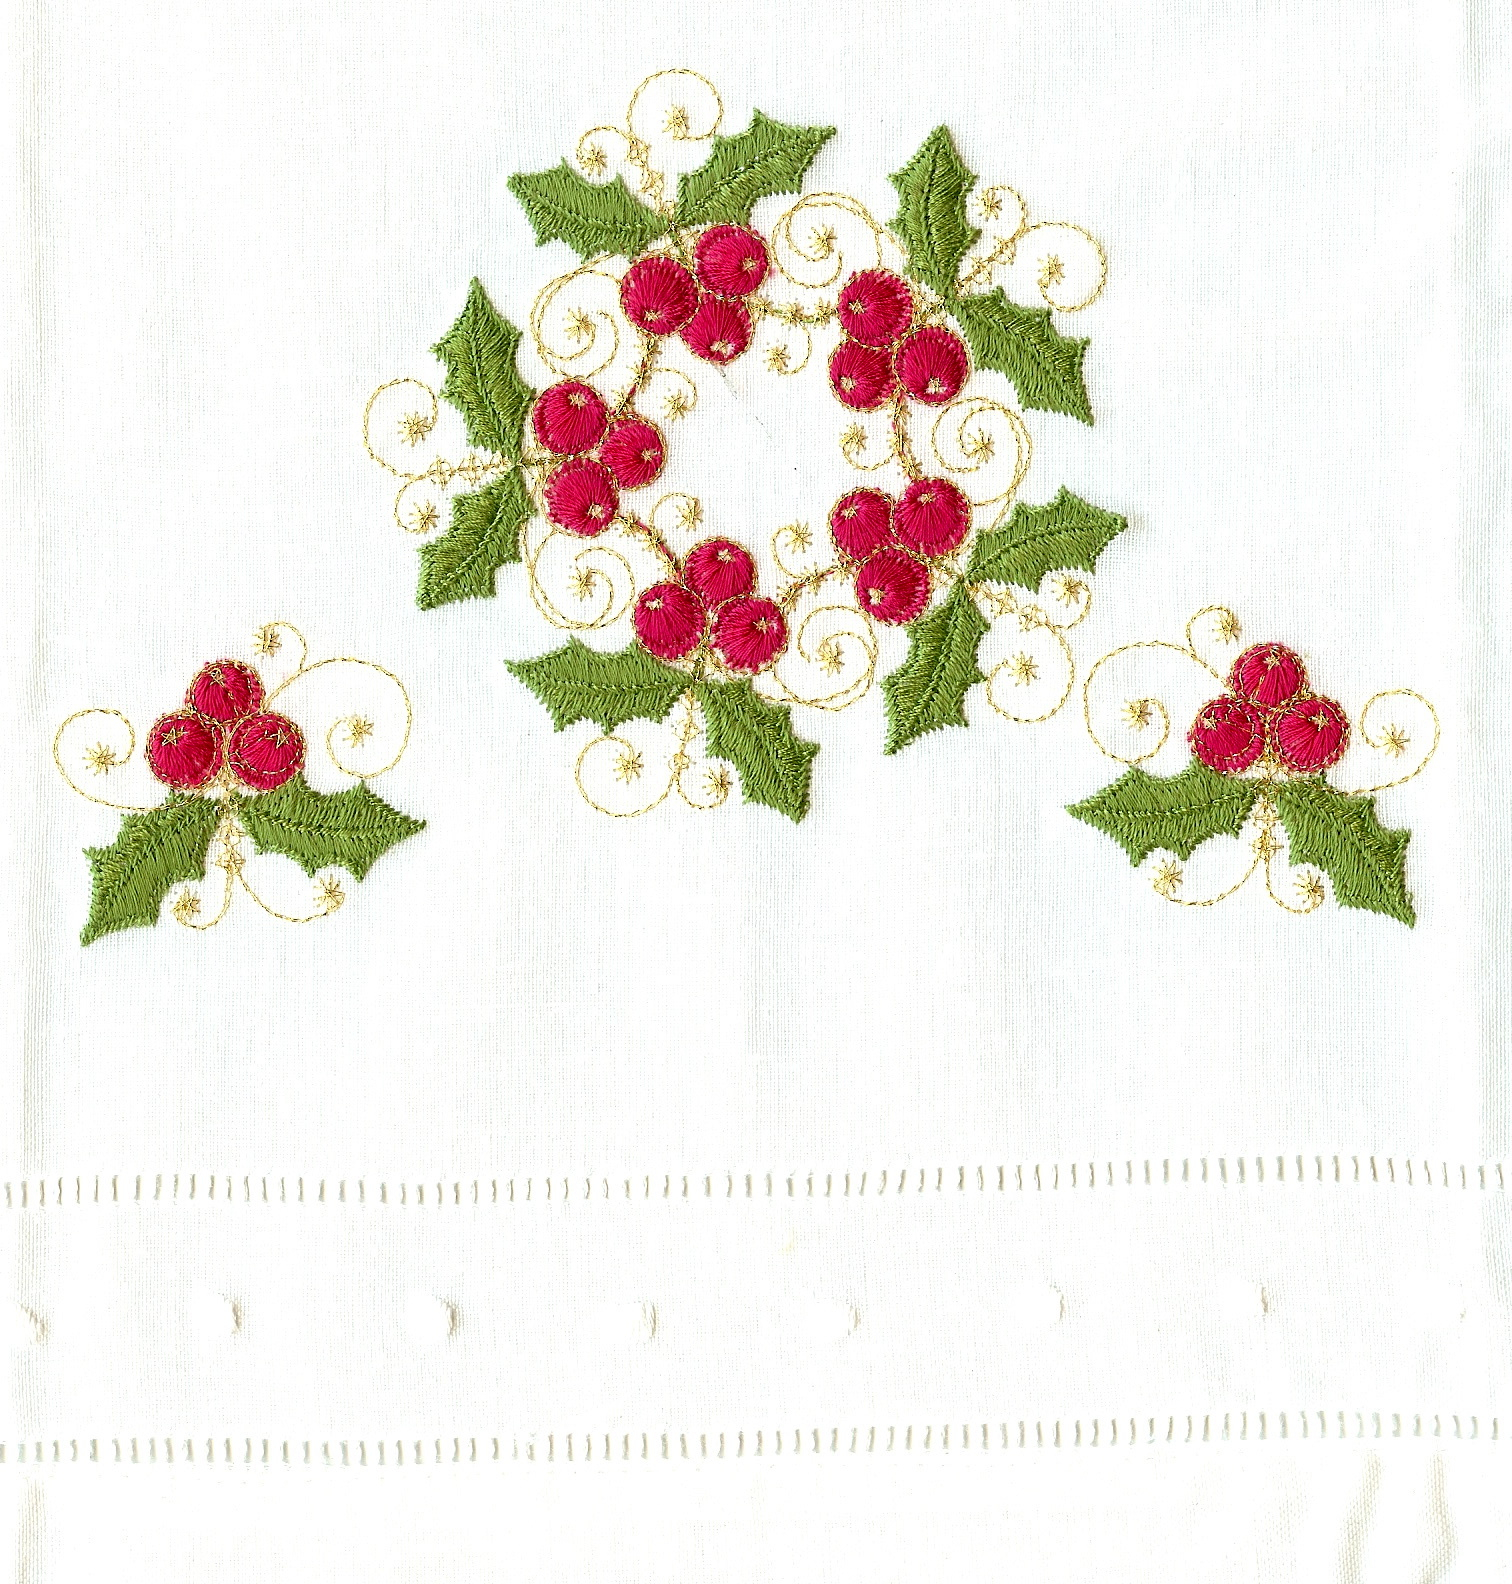 Free Christmas Embroidery Patterns Free Printable Embroidery Patterns Hand 108 Images In